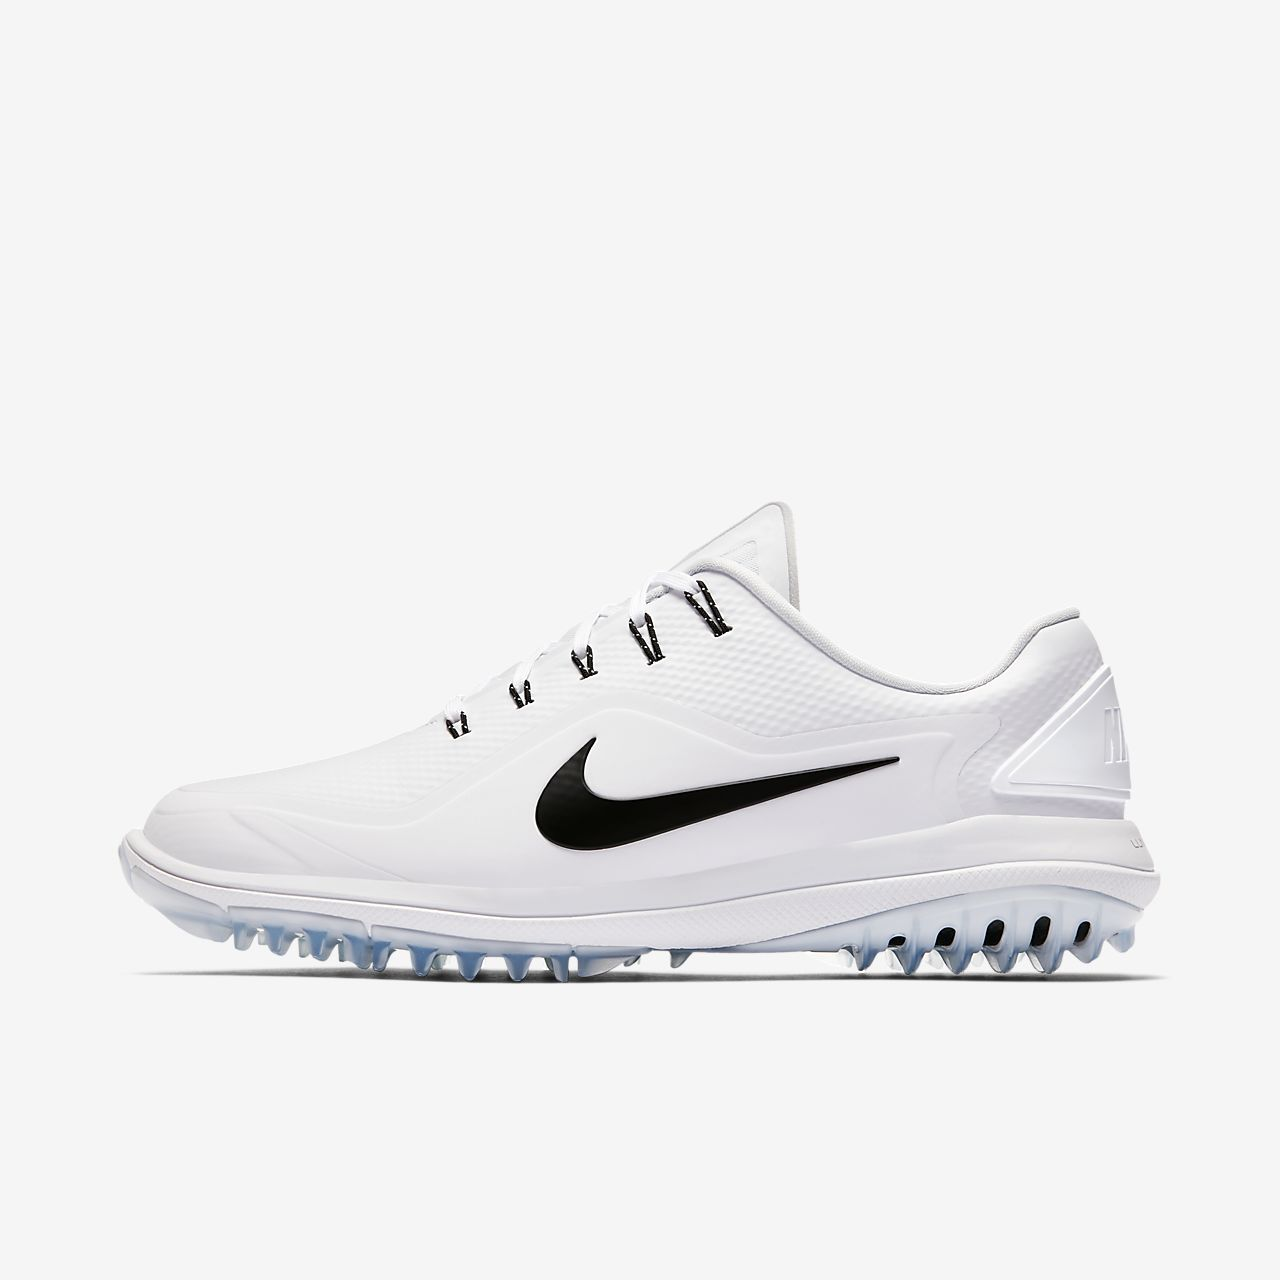 NIKE LUNAR CONTROL VAPOR 2 GOLF SHOES  MENS ATHLETIC SNEAKERS  BLACK / WHITE